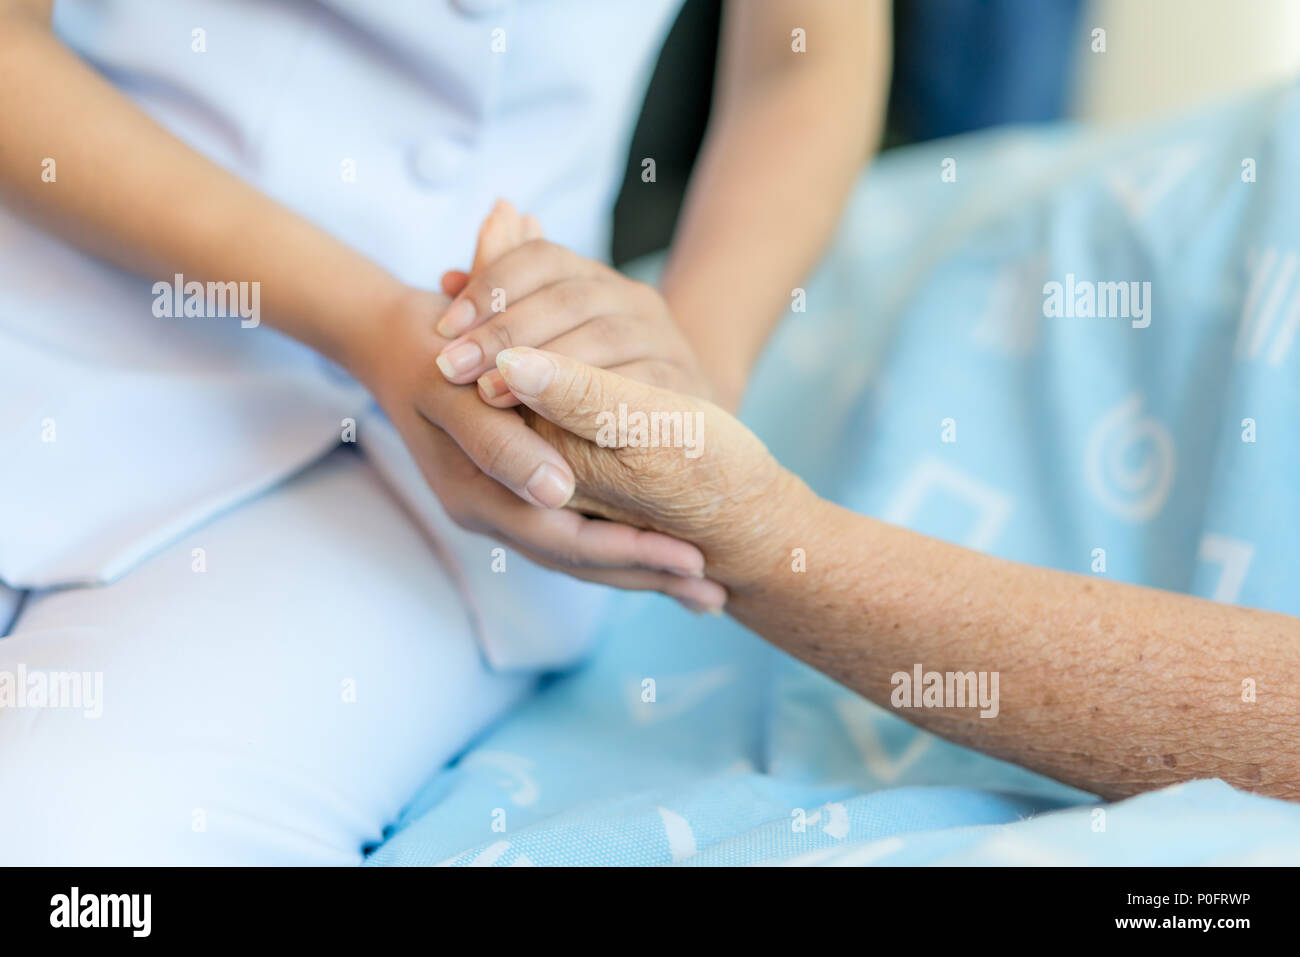 Nurse sitting on a hospital bed next to an older woman helping hands, care for the elderly concept - Stock Image